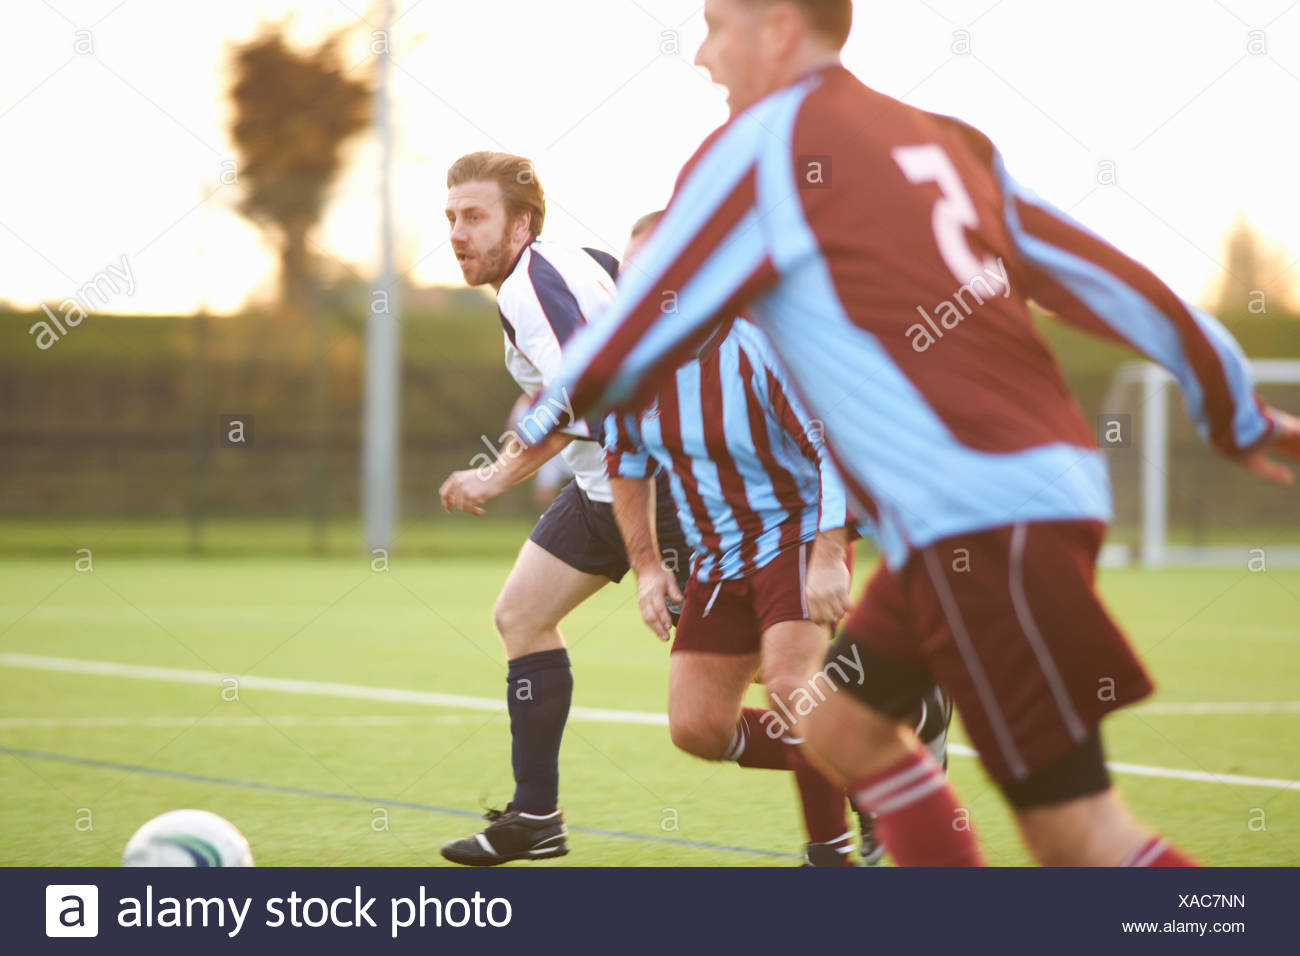 Football players running after ball - Stock Image